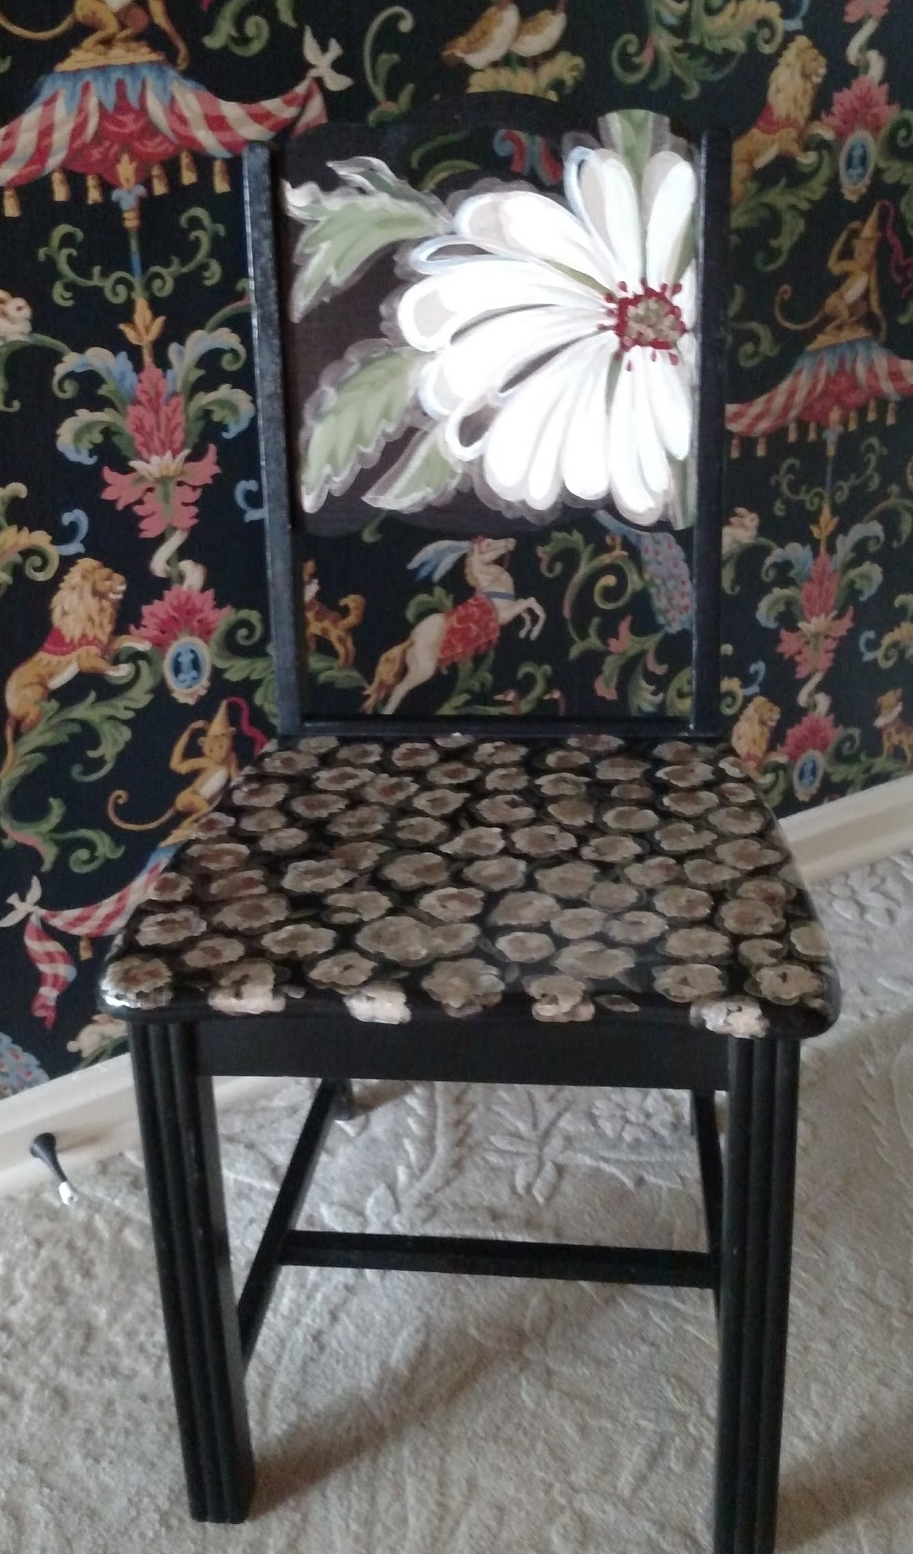 FLOWER CHAIR #3.jpg